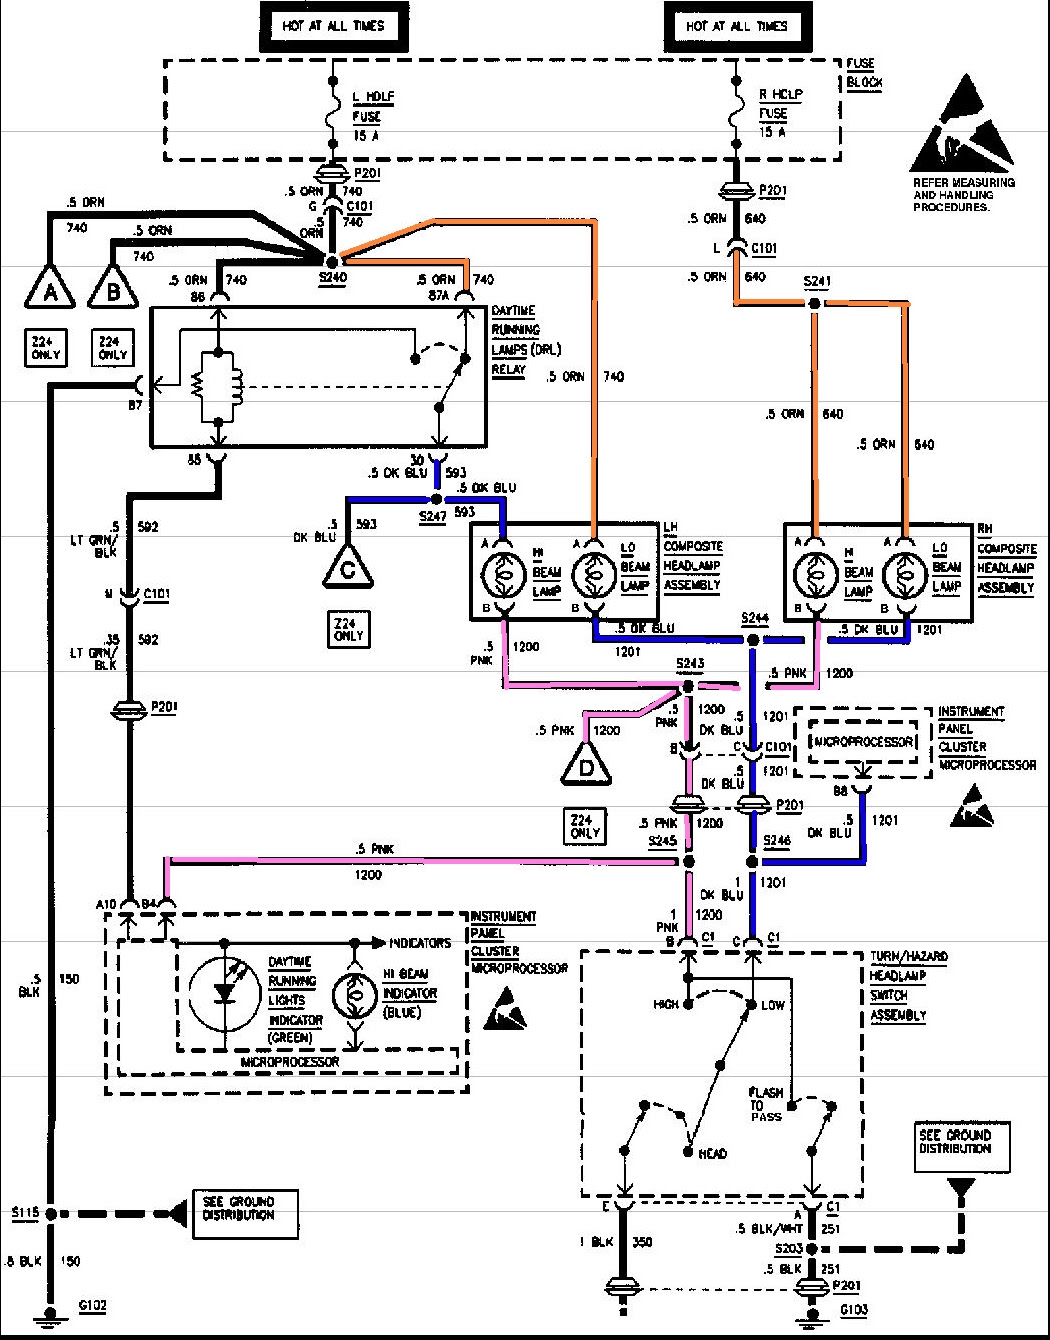 I need a electrical wiring diagram for a 1997 cavalier. I ...